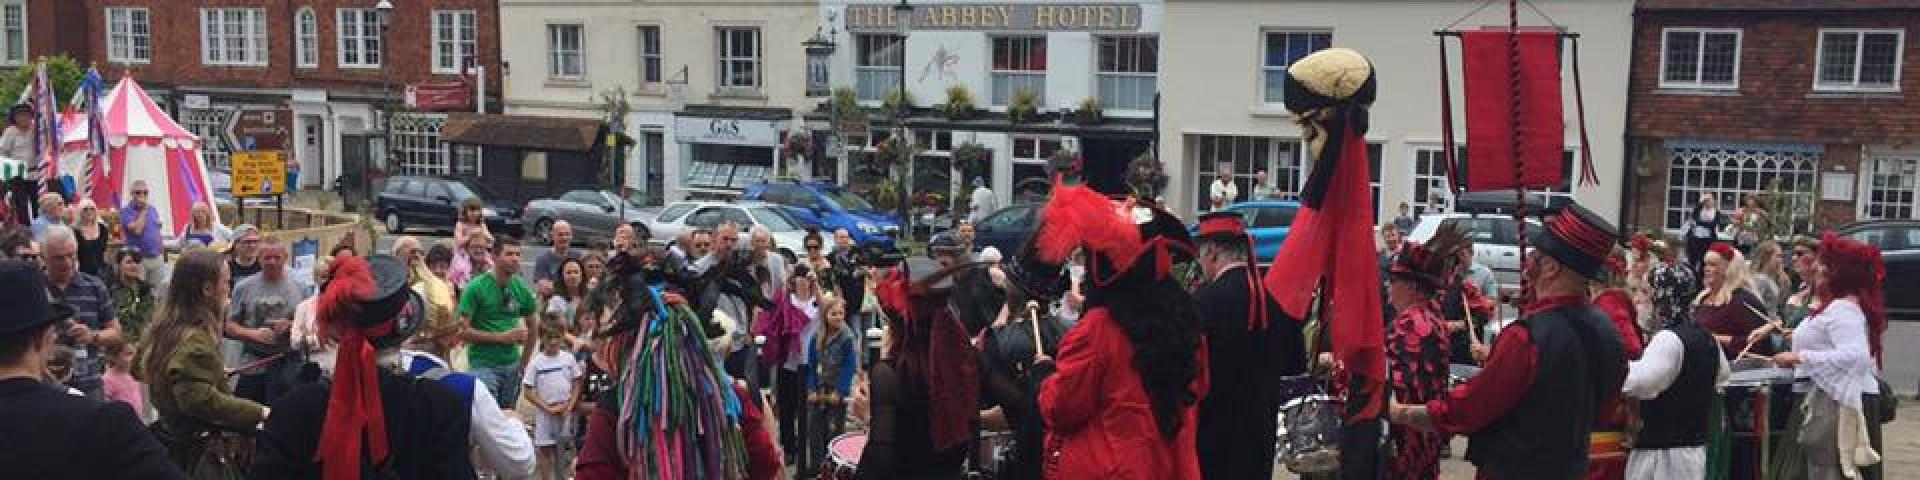 Abbey Hotel, Battle, Hastings